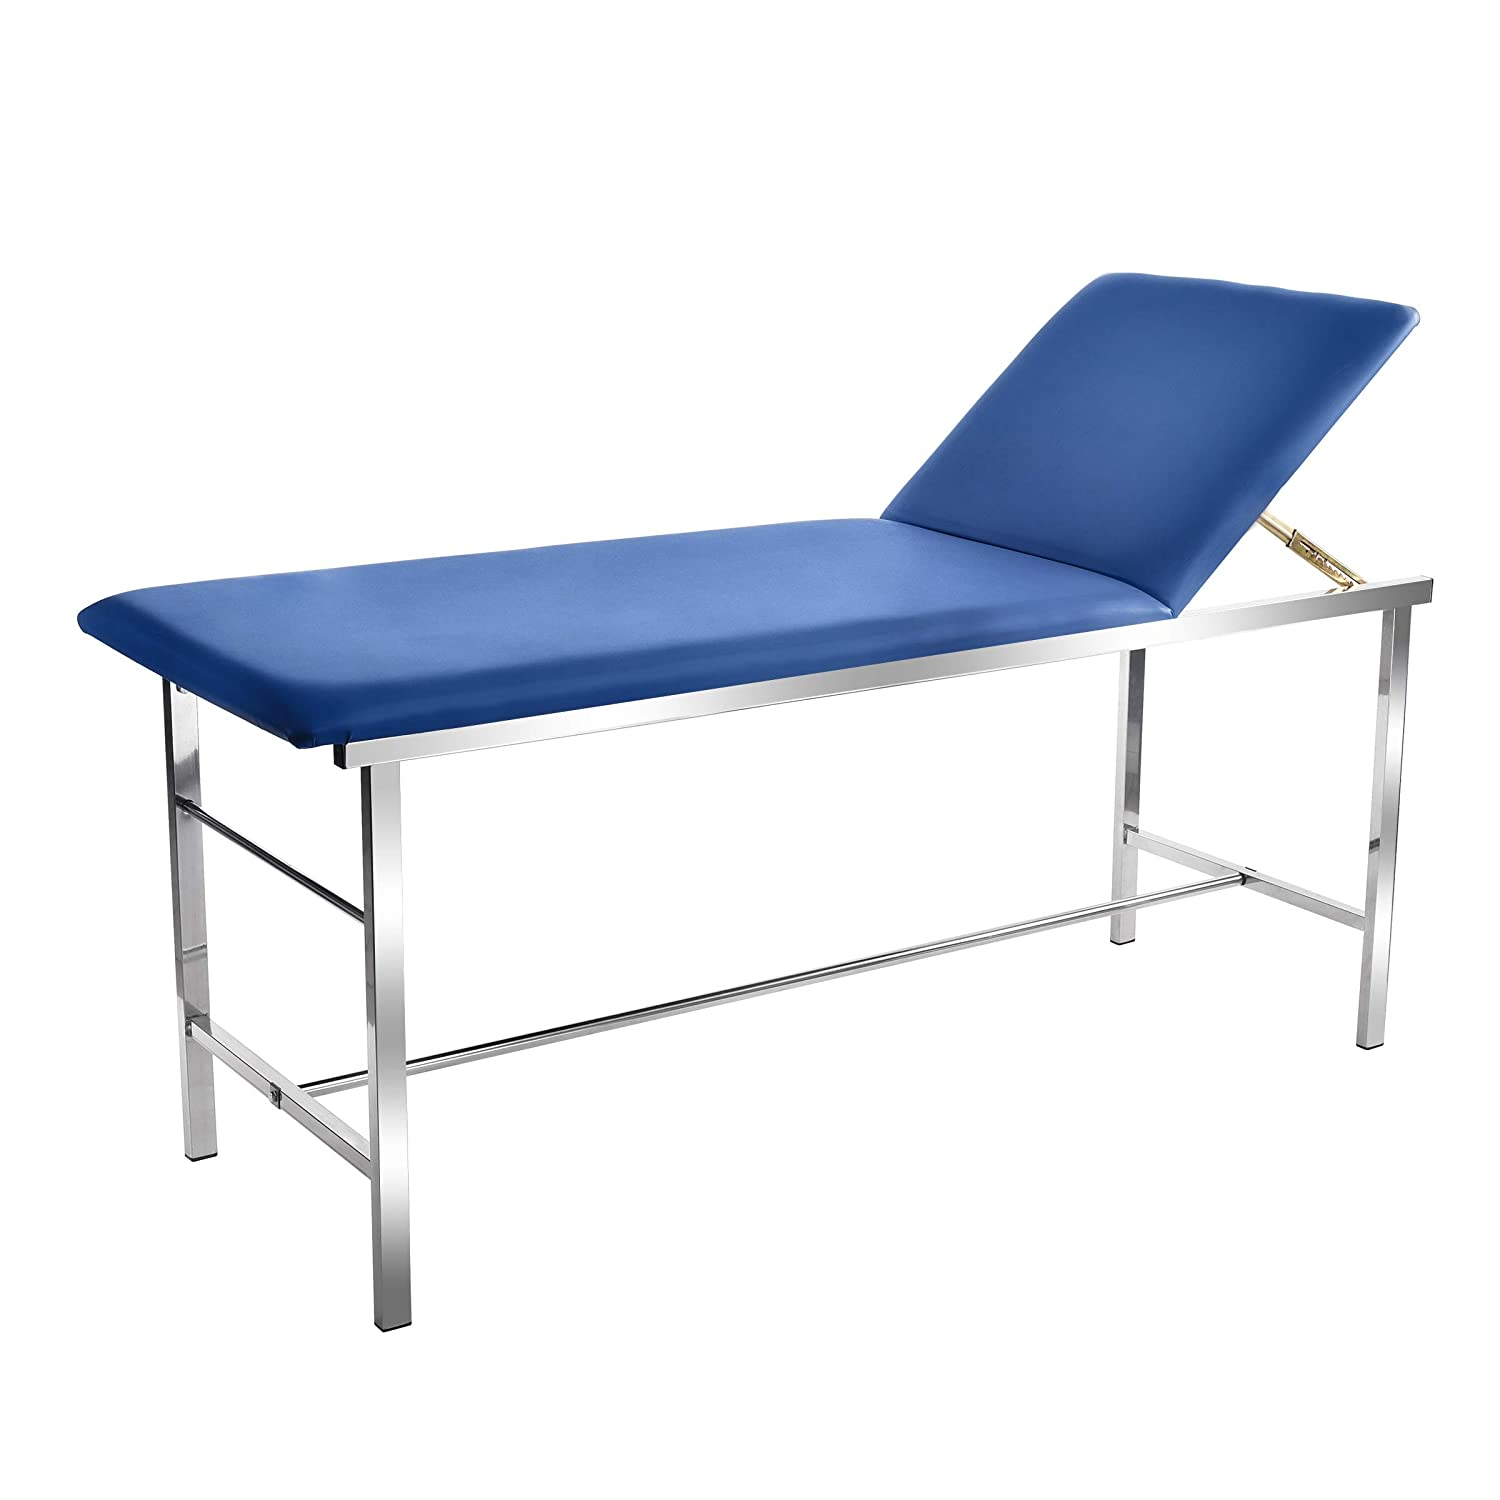 "AdirMed Reliable & Comfortable Medical Exam Table - Built In Paper Towel Dispenser - Durable 2"" Foam Padding - Powder Coated Steel Frame - Adjustable Backrest - Up to 440lbs - Easy To Clean (Blue)"